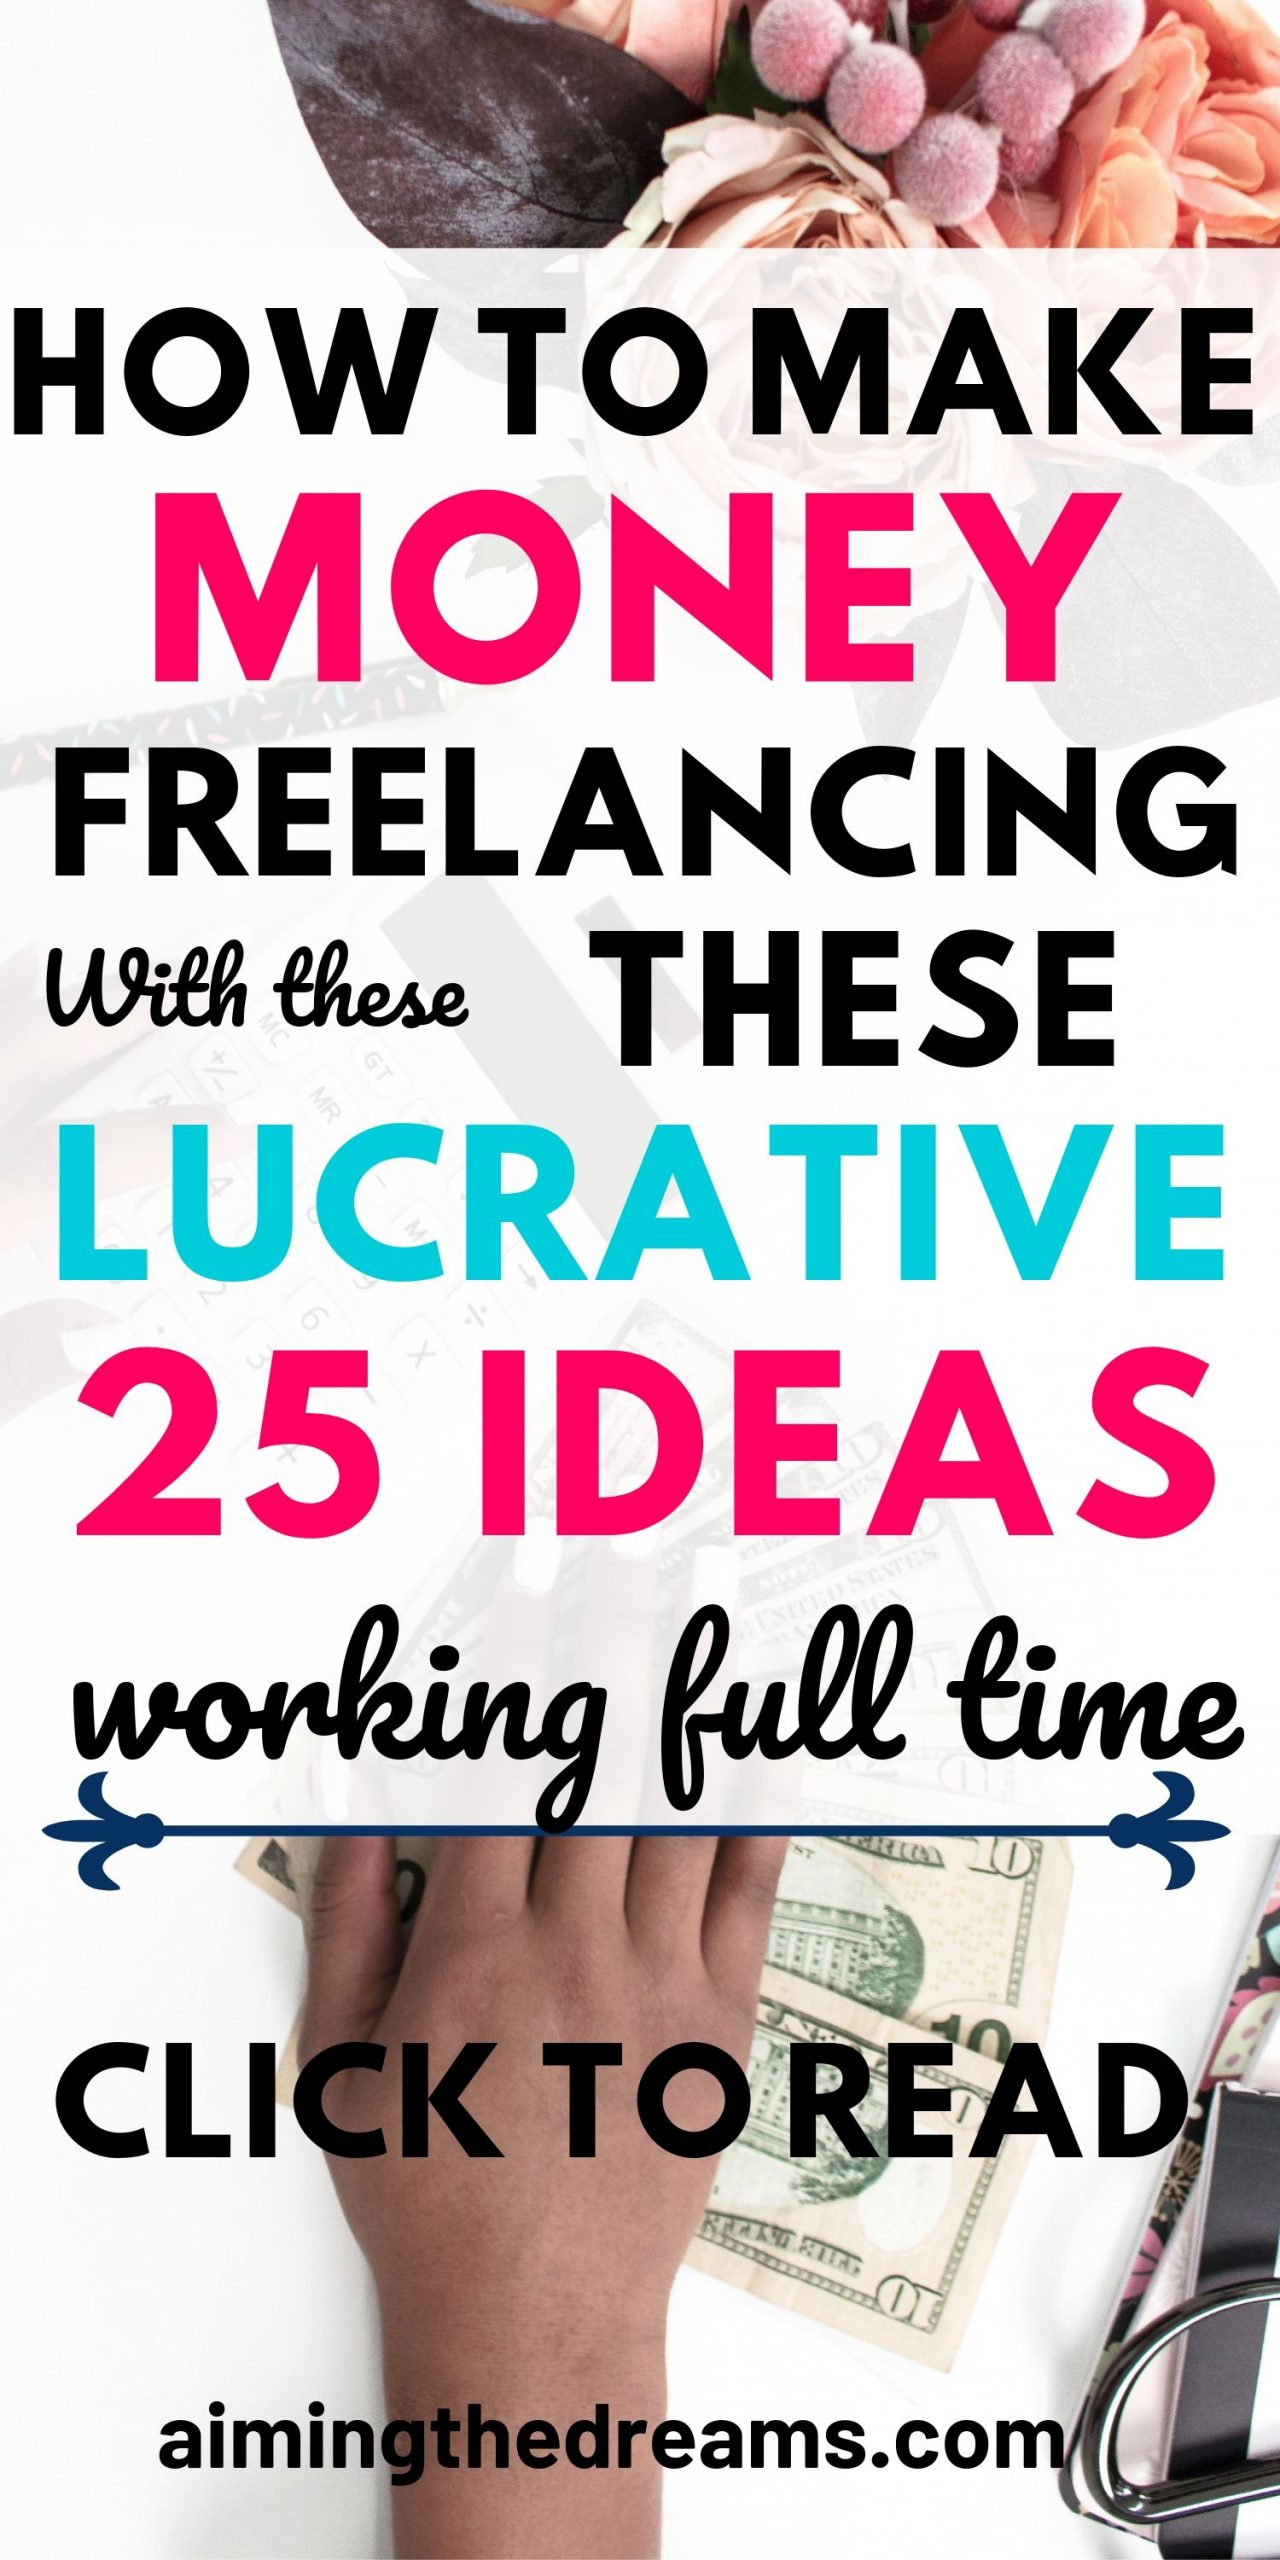 25 freelance work ideas to make money while working full time. Side hustle ideas let you work from home along with your full time work.